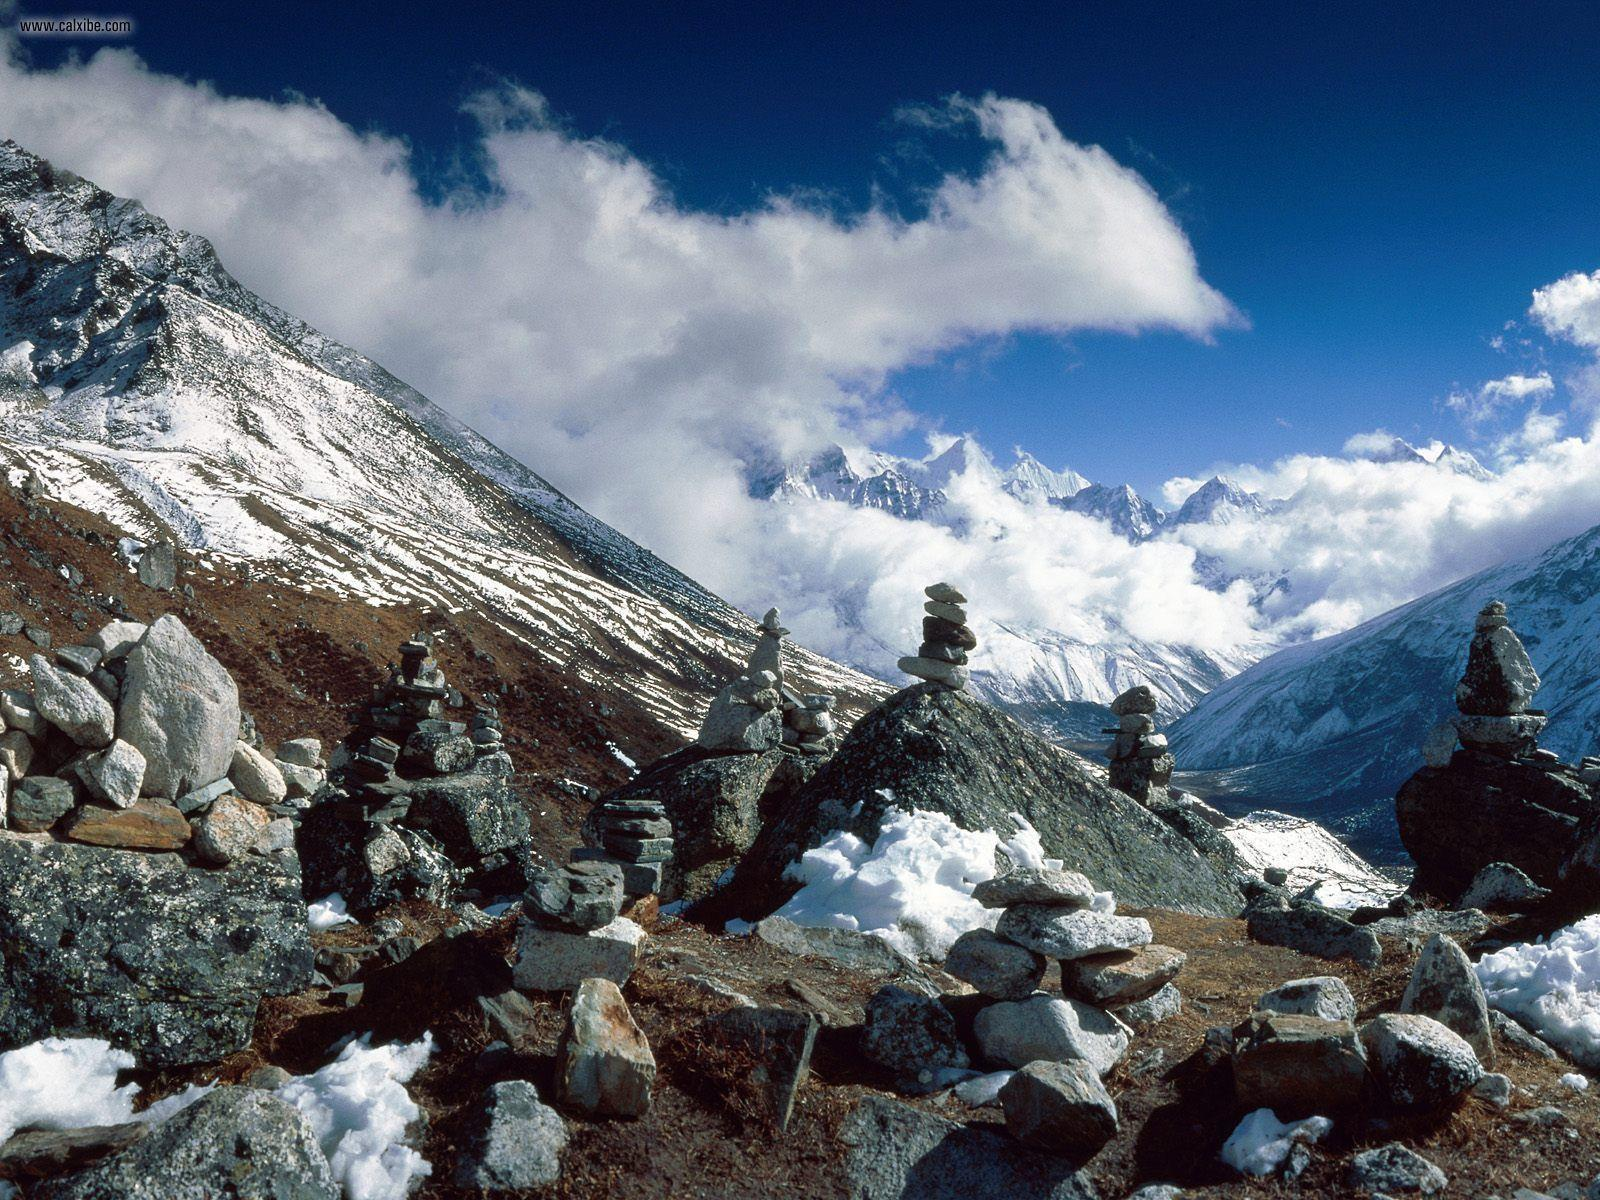 himalaya mountains hd wallpaper - photo #3